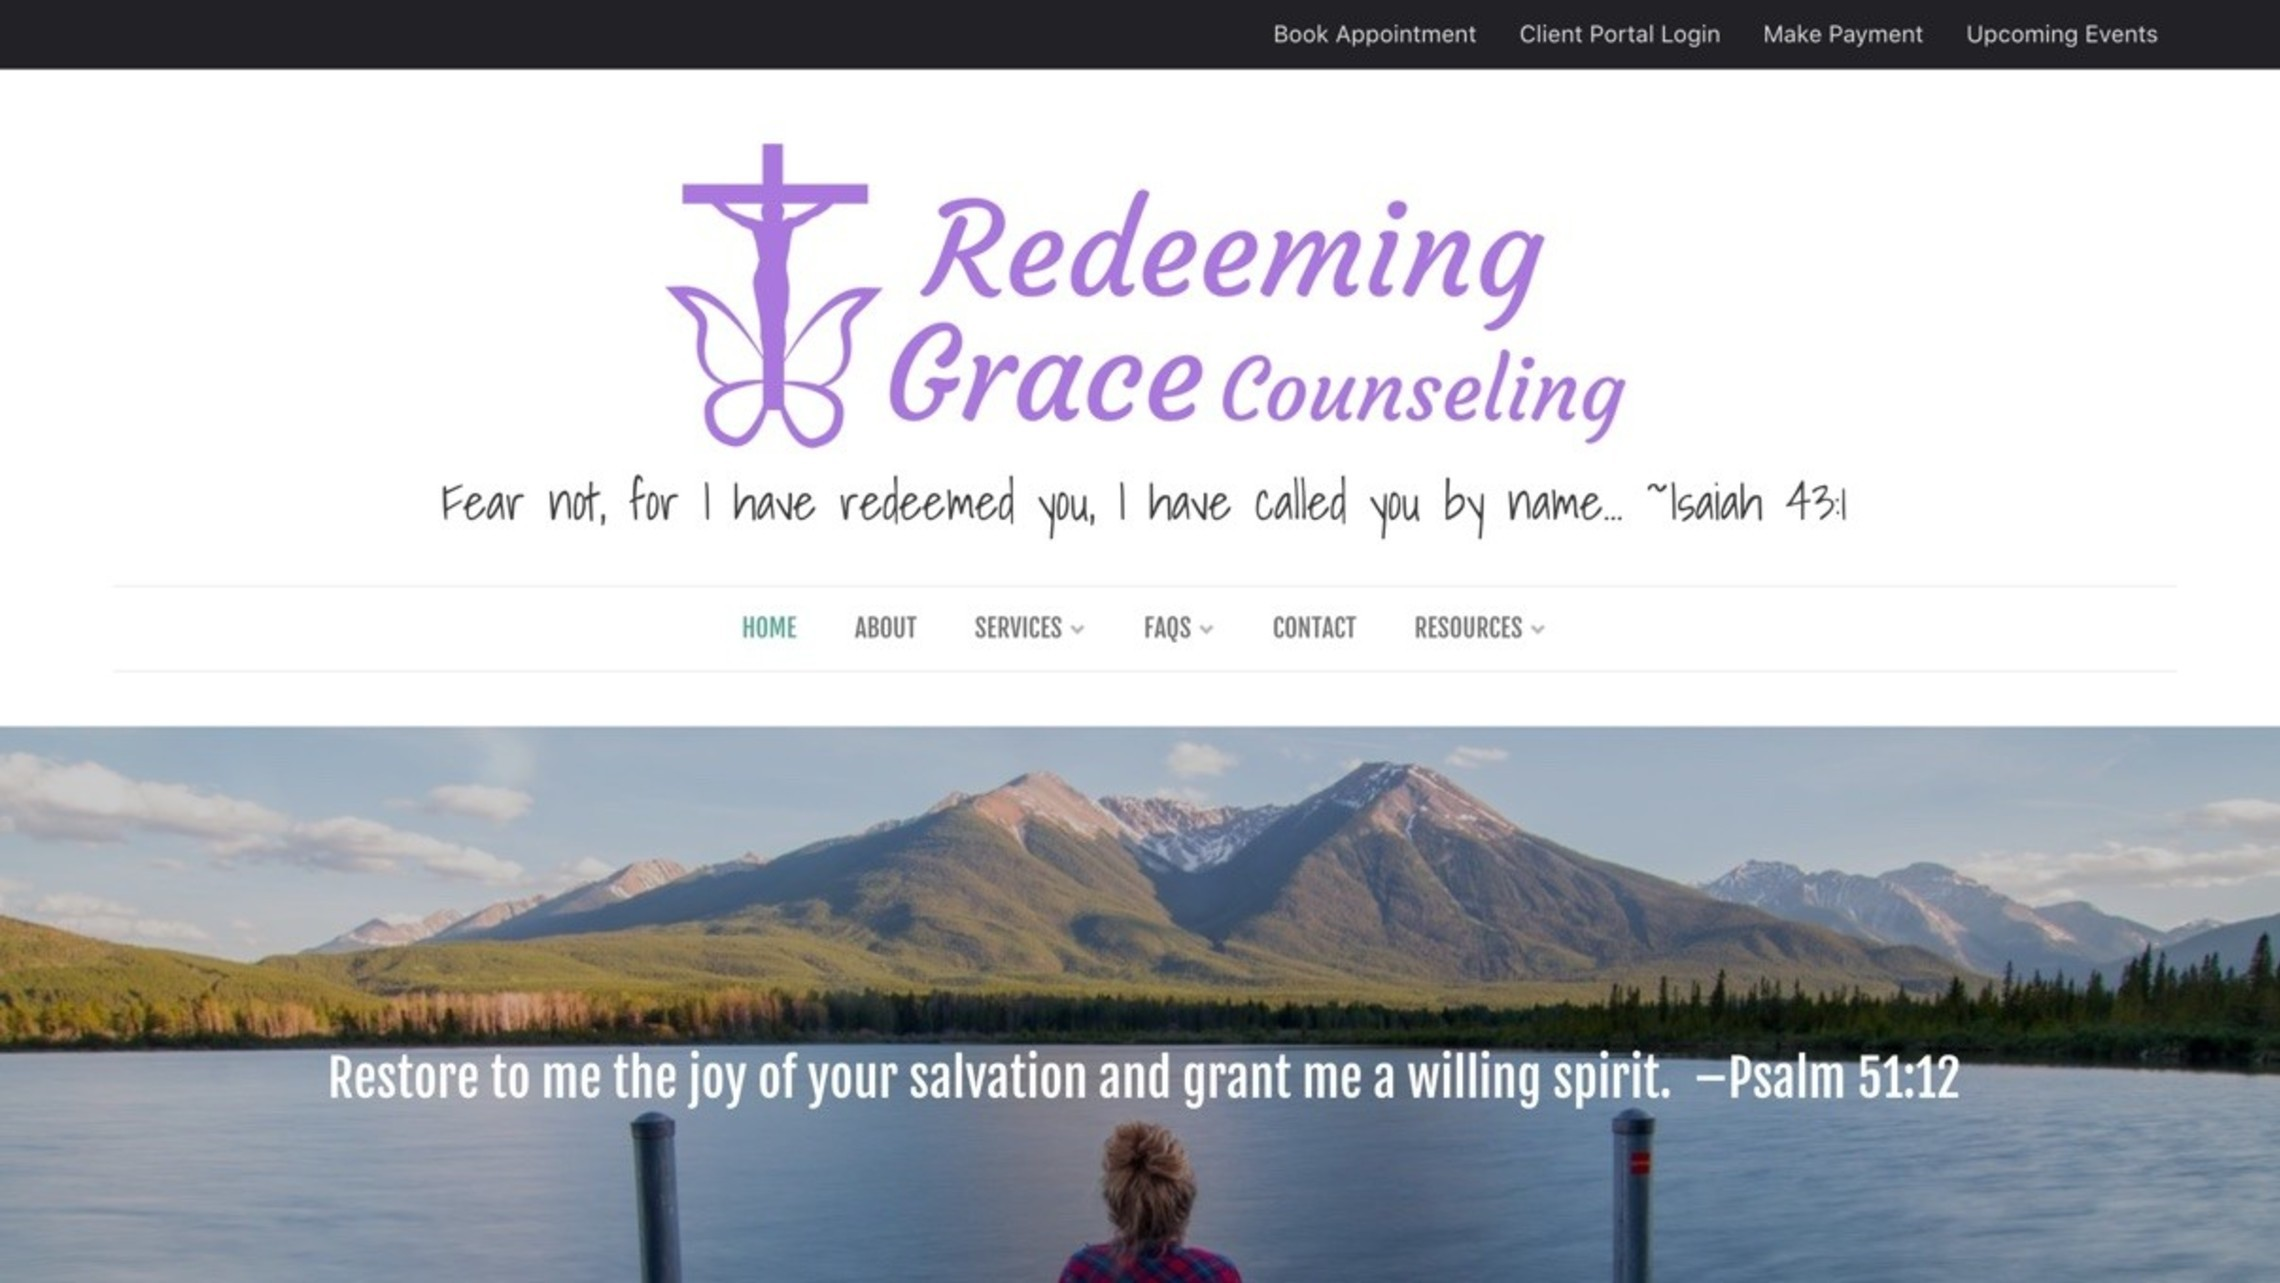 Redeeming Grace Counseling